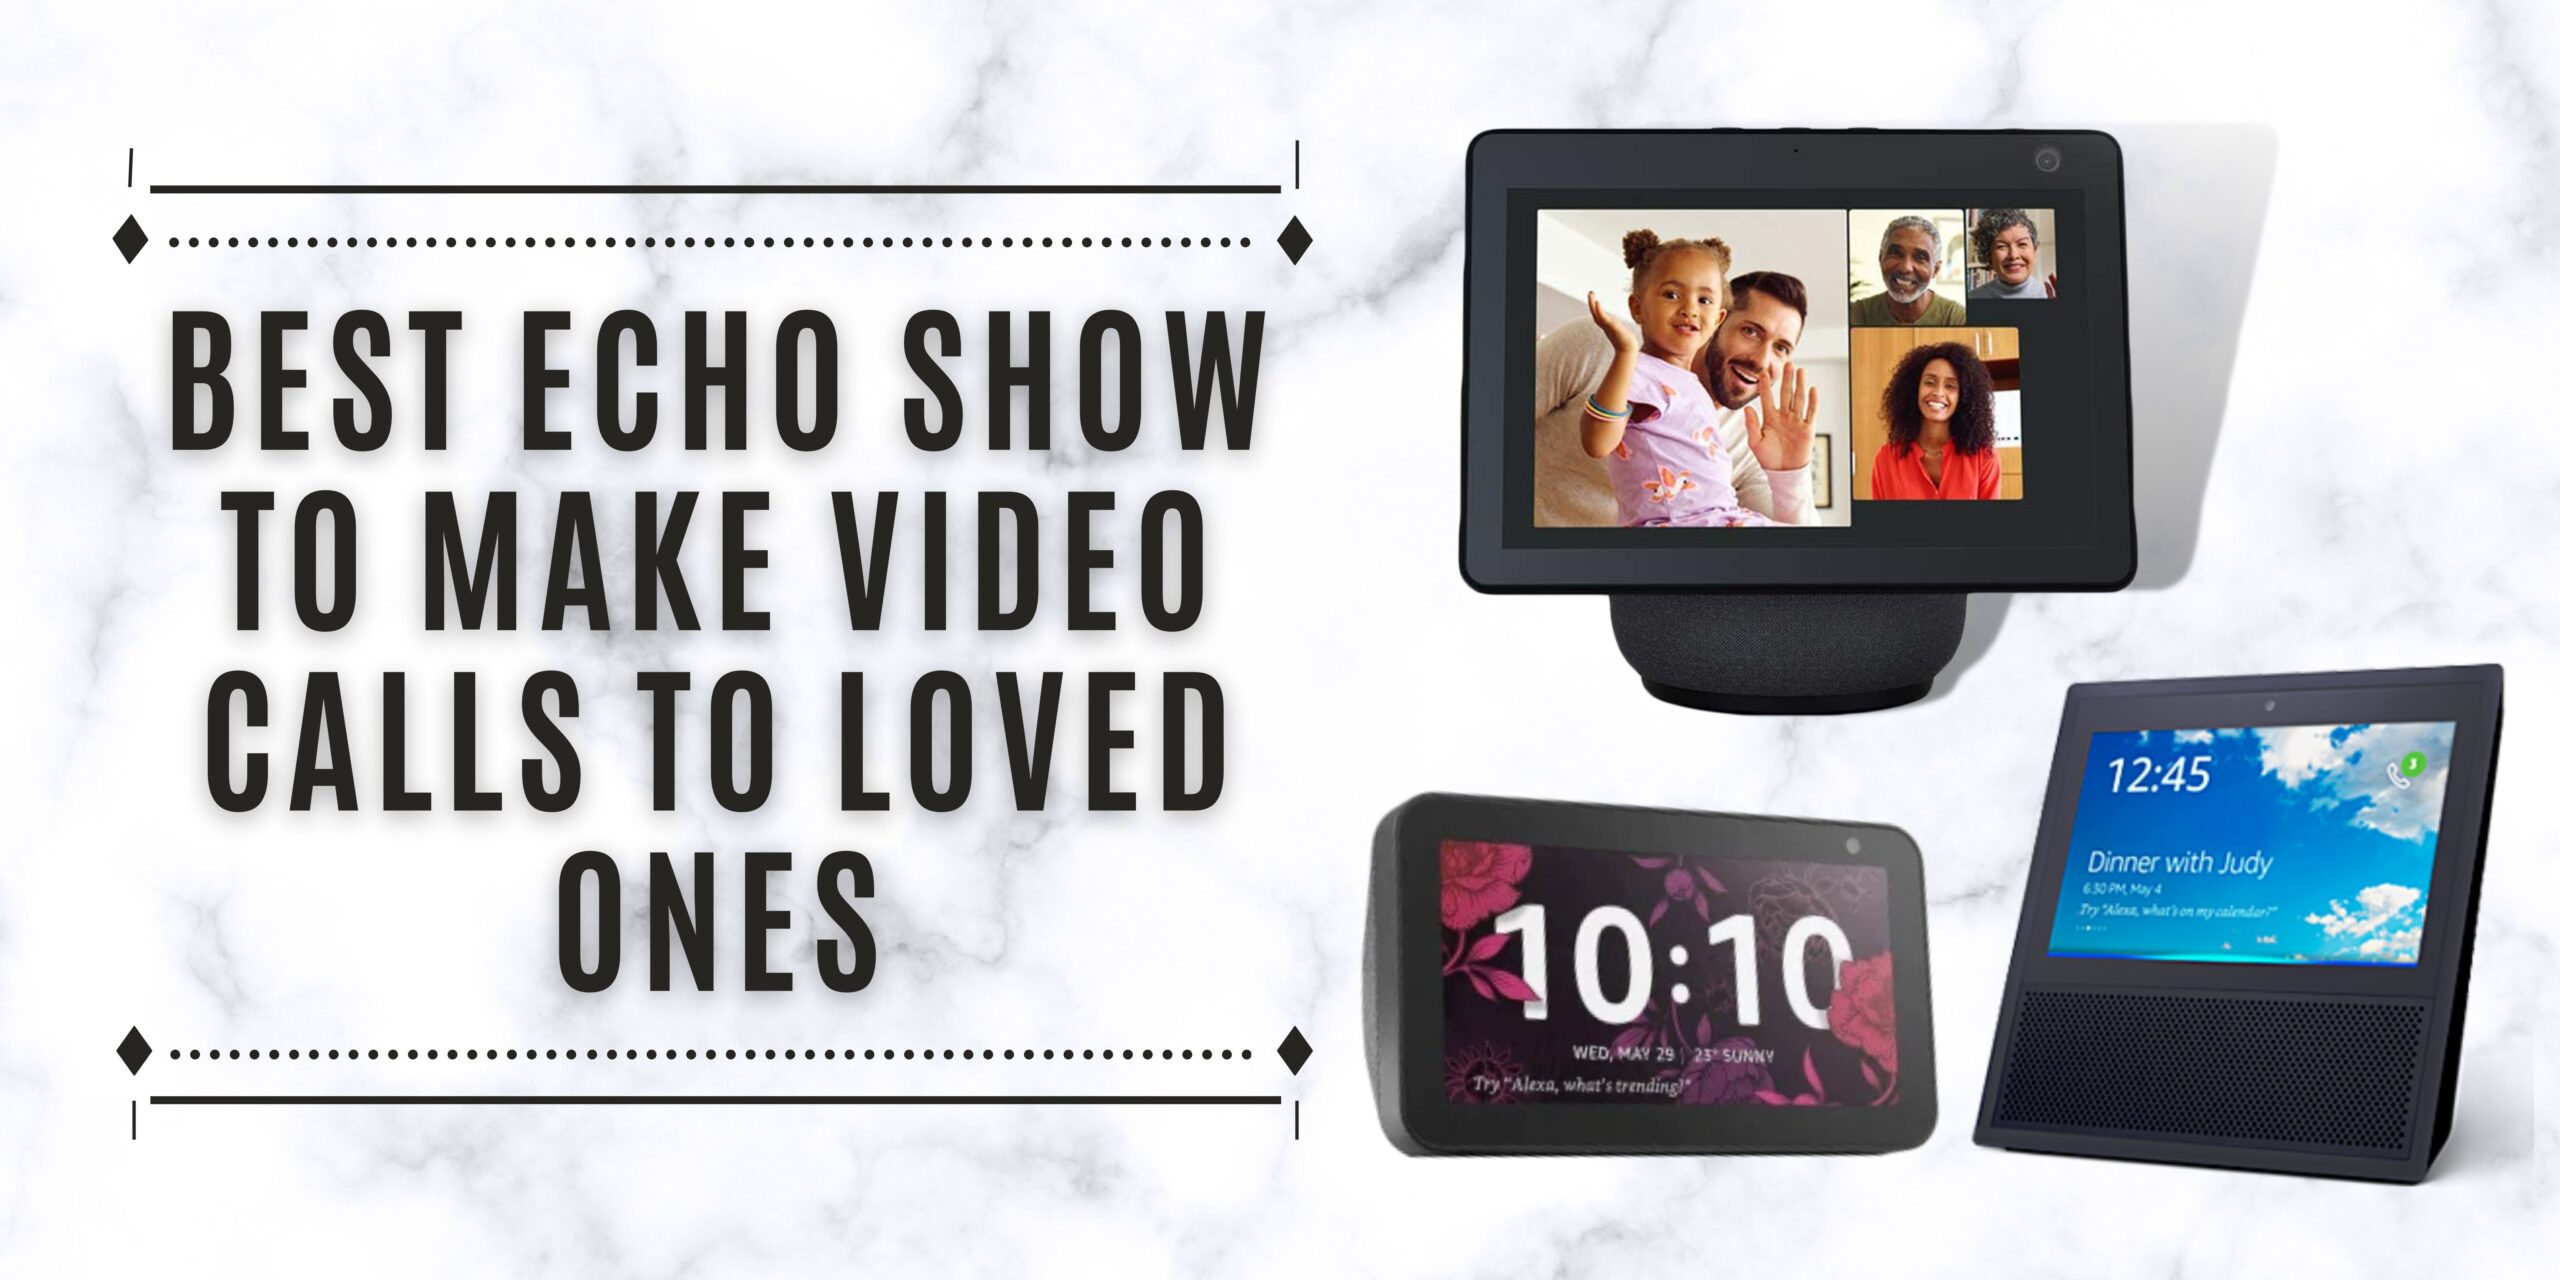 4 Best Echo Show to Make Video calls to loved ones